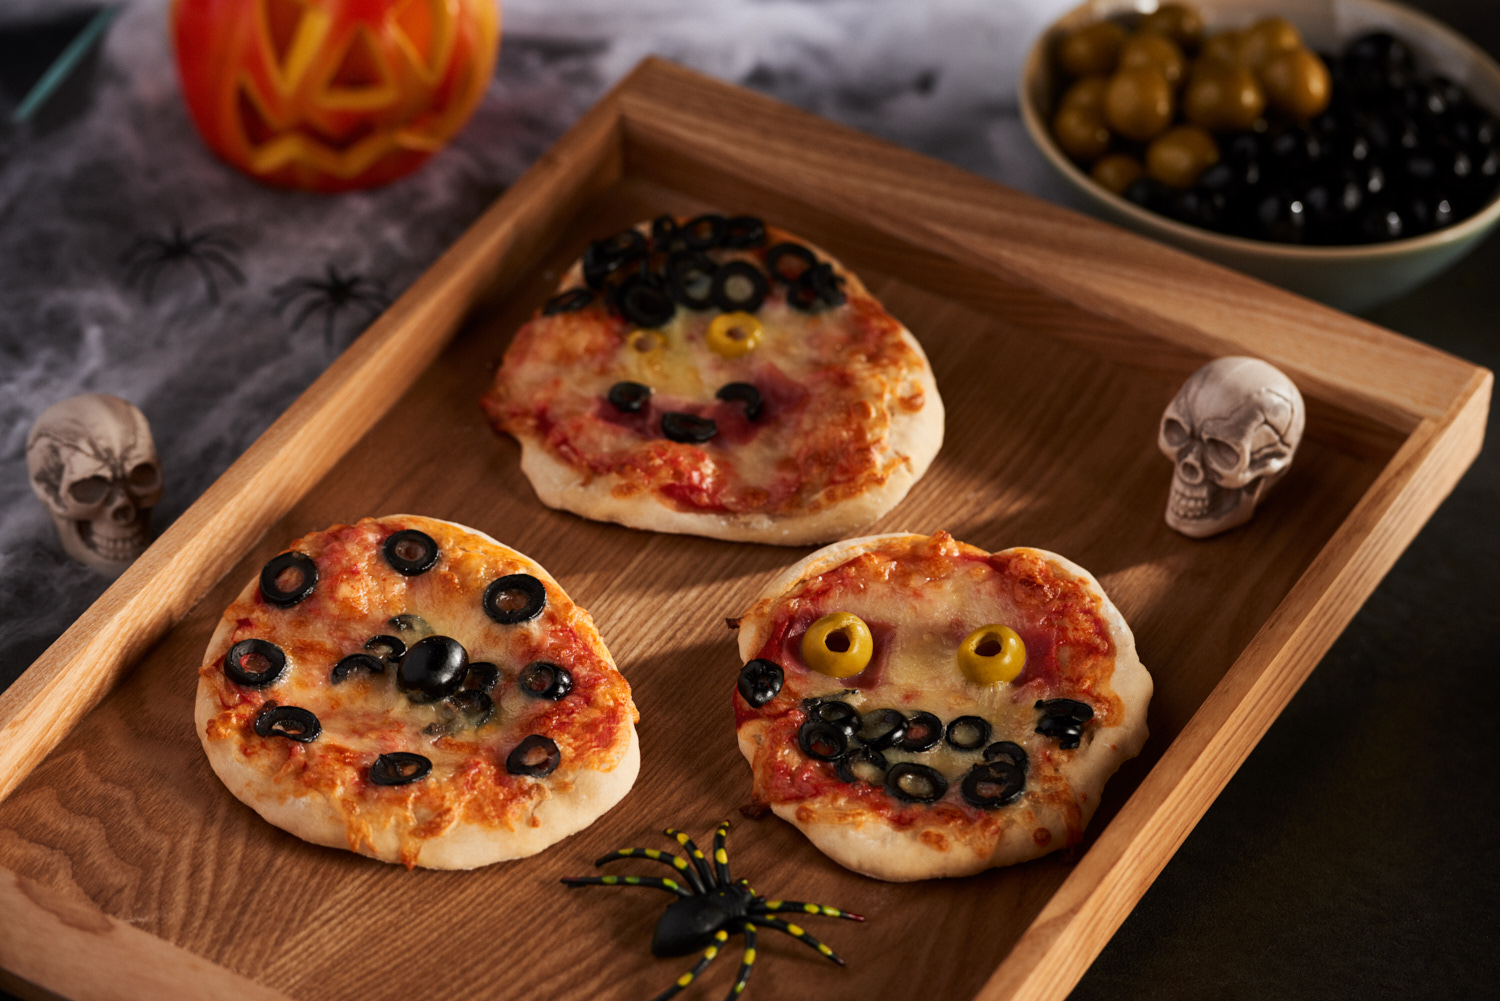 olives from spain introduce their olives halloween mini pizzas recipe